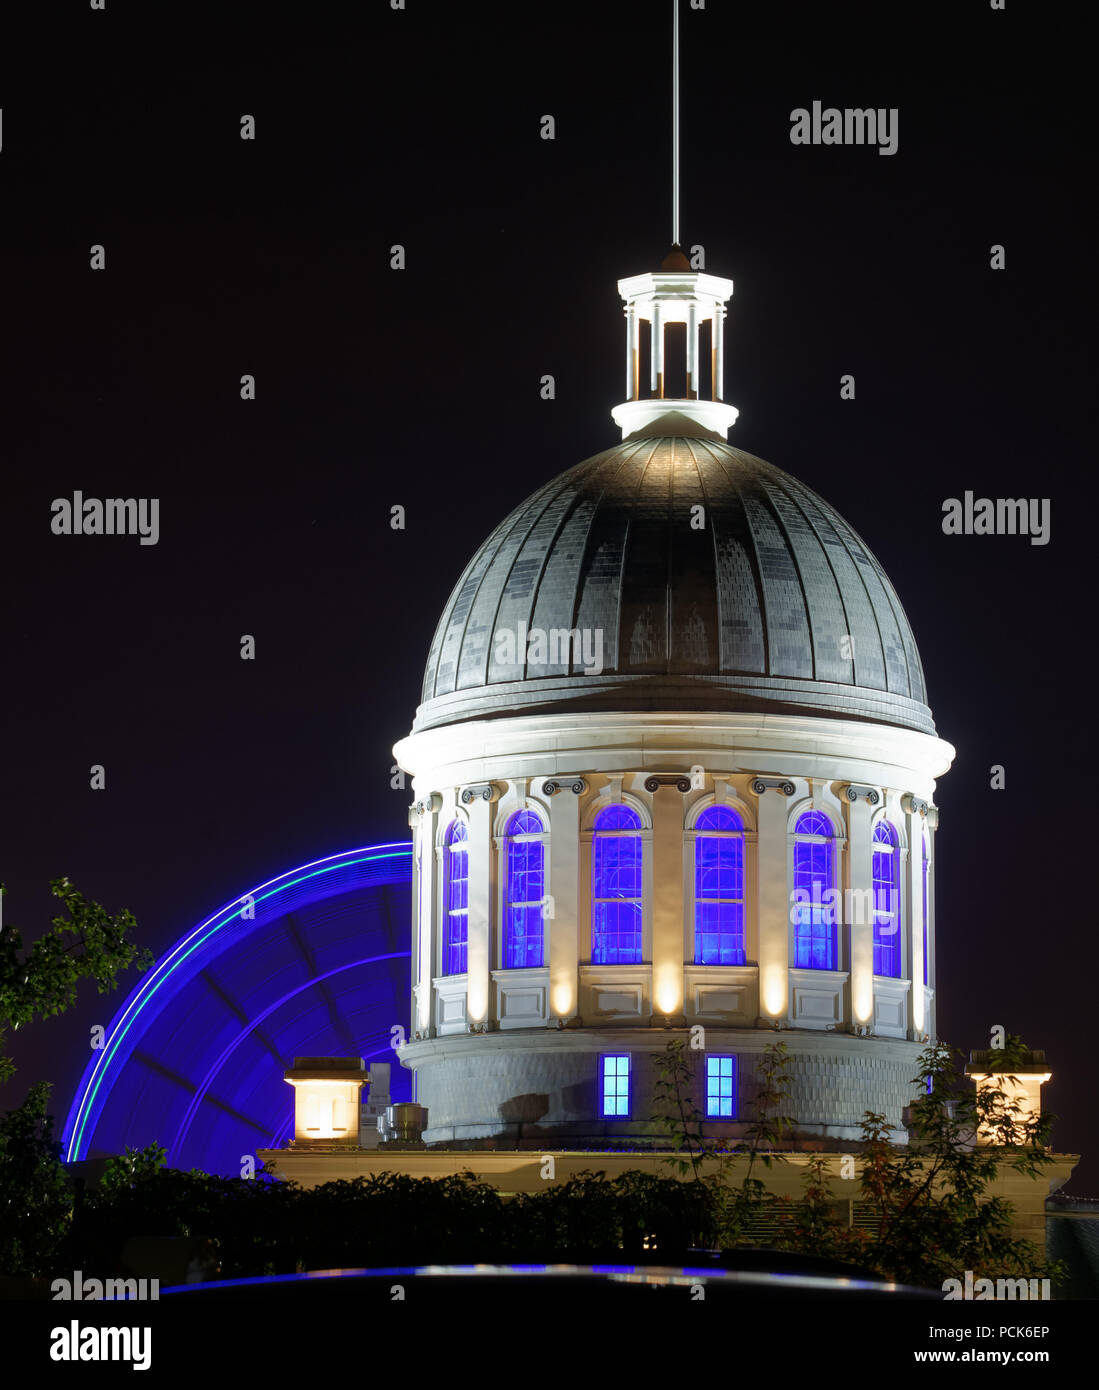 The Dome of the Marché Bonsecours in Montreal Old Port with the big wheel La Grande Roue turning behind - Stock Image